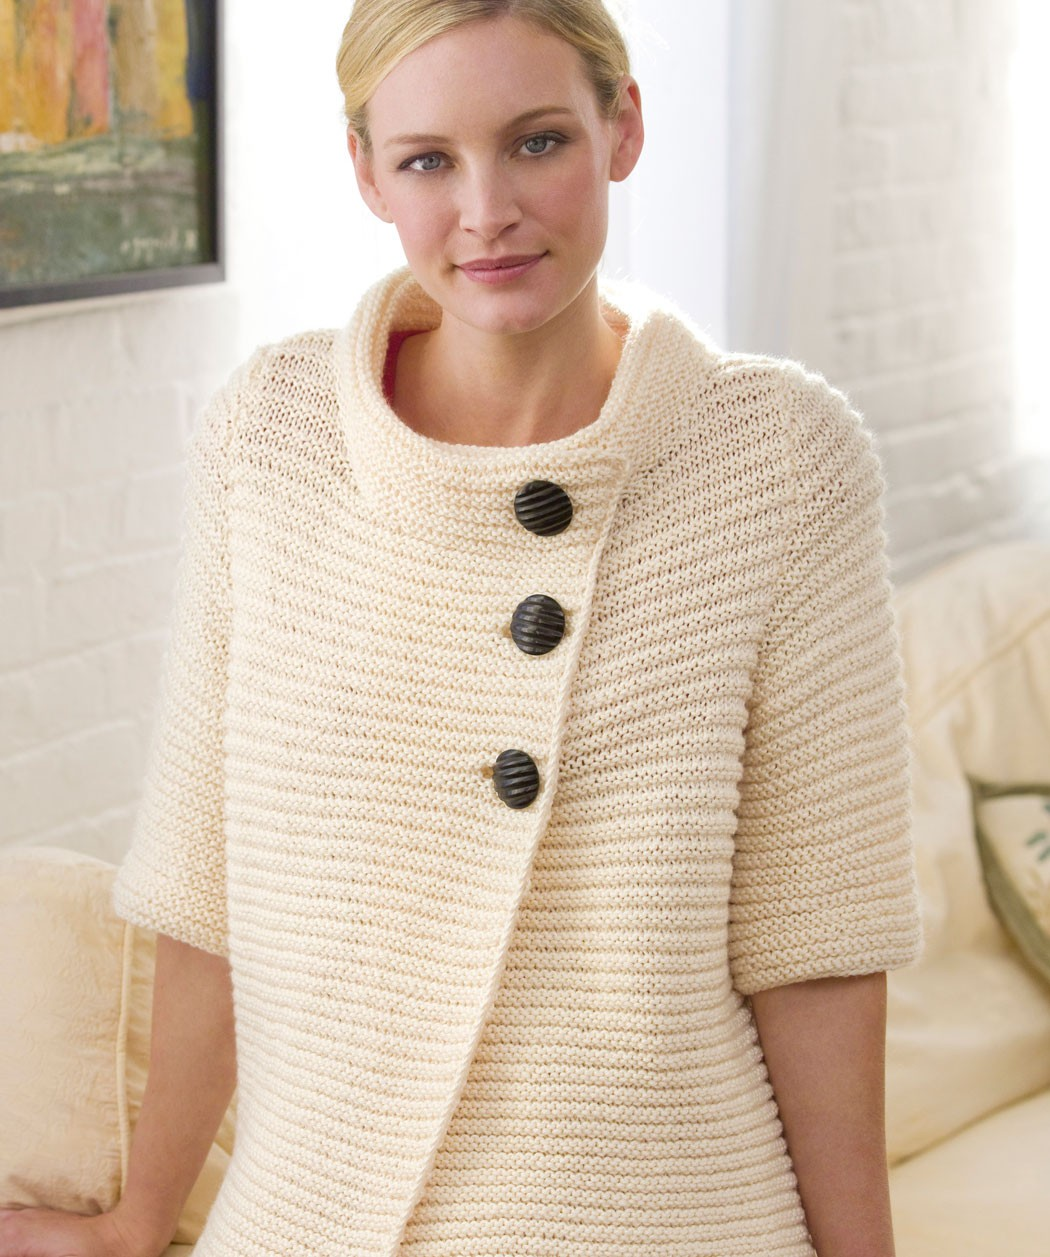 Knitting Patterns For Larger Ladies : Knitted Sweater Patterns for Women A Knitting Blog